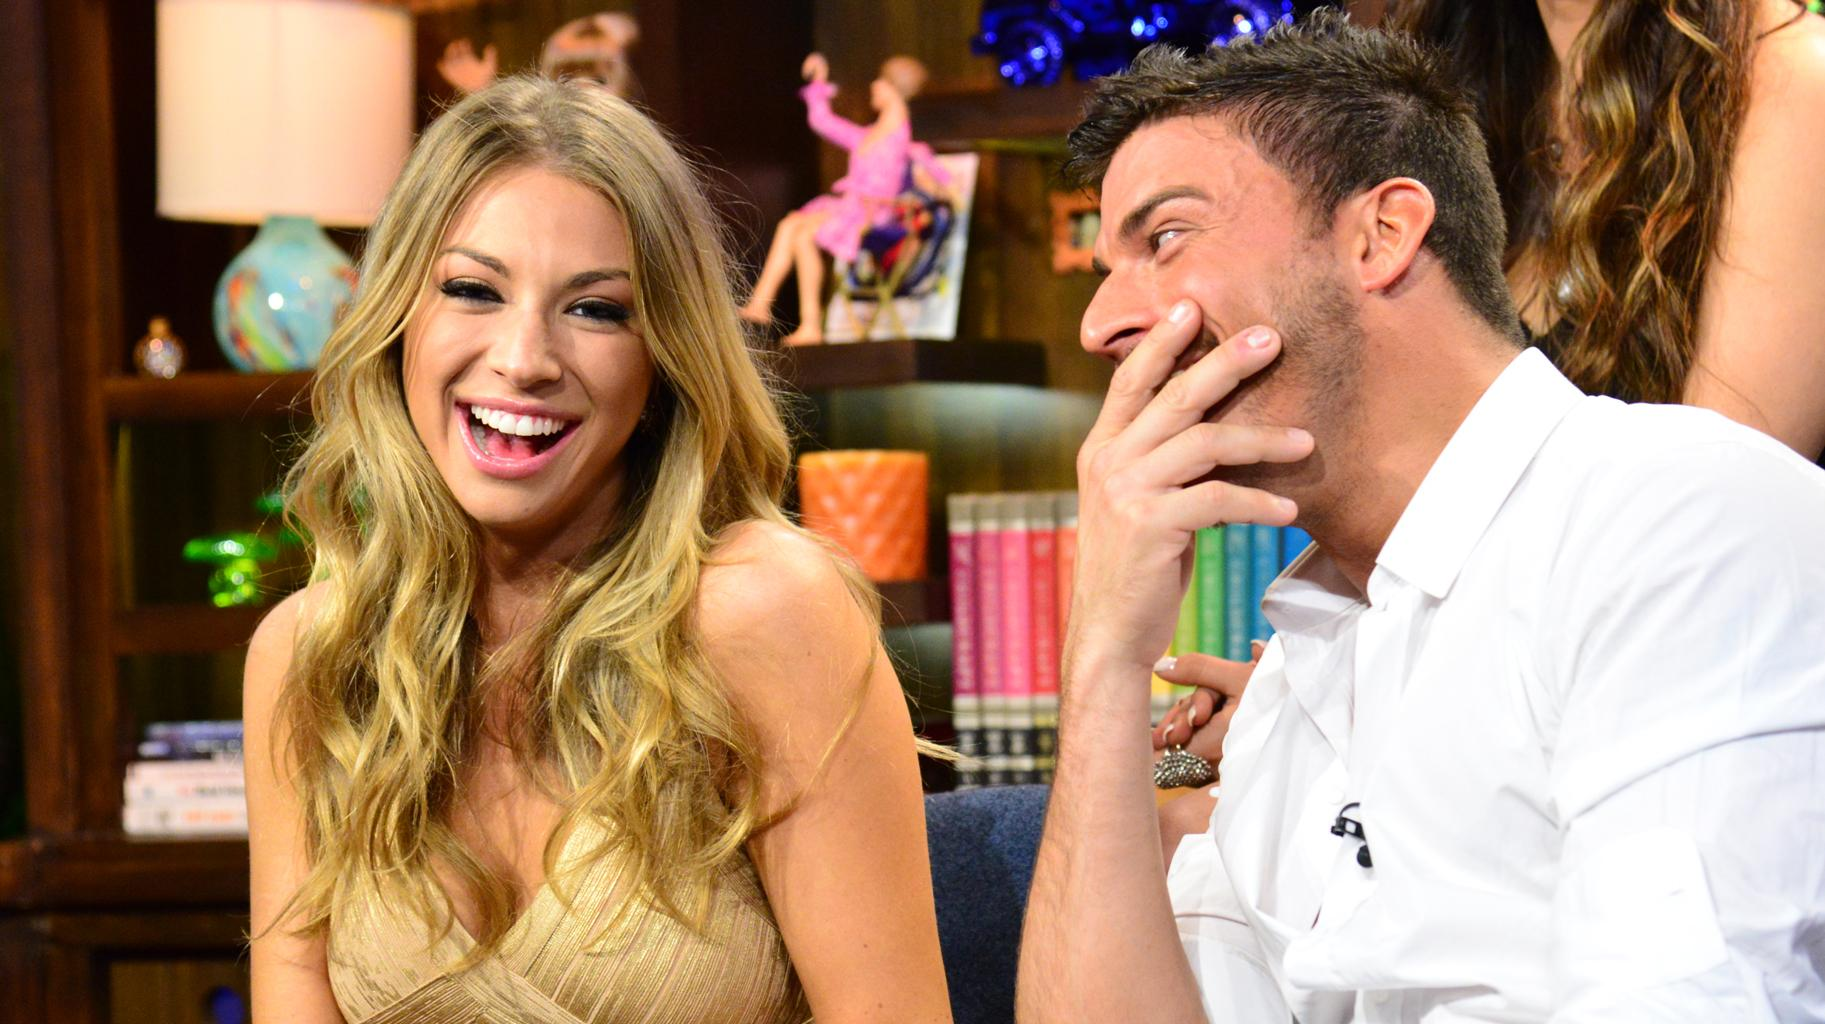 Stassi Schroeder Scientology Bombshell -- 'Vanderpump Rules' Star Recalls Meeting Tom Cruise's Mentor And Being Lured Into 'Cult' With Jax Taylor